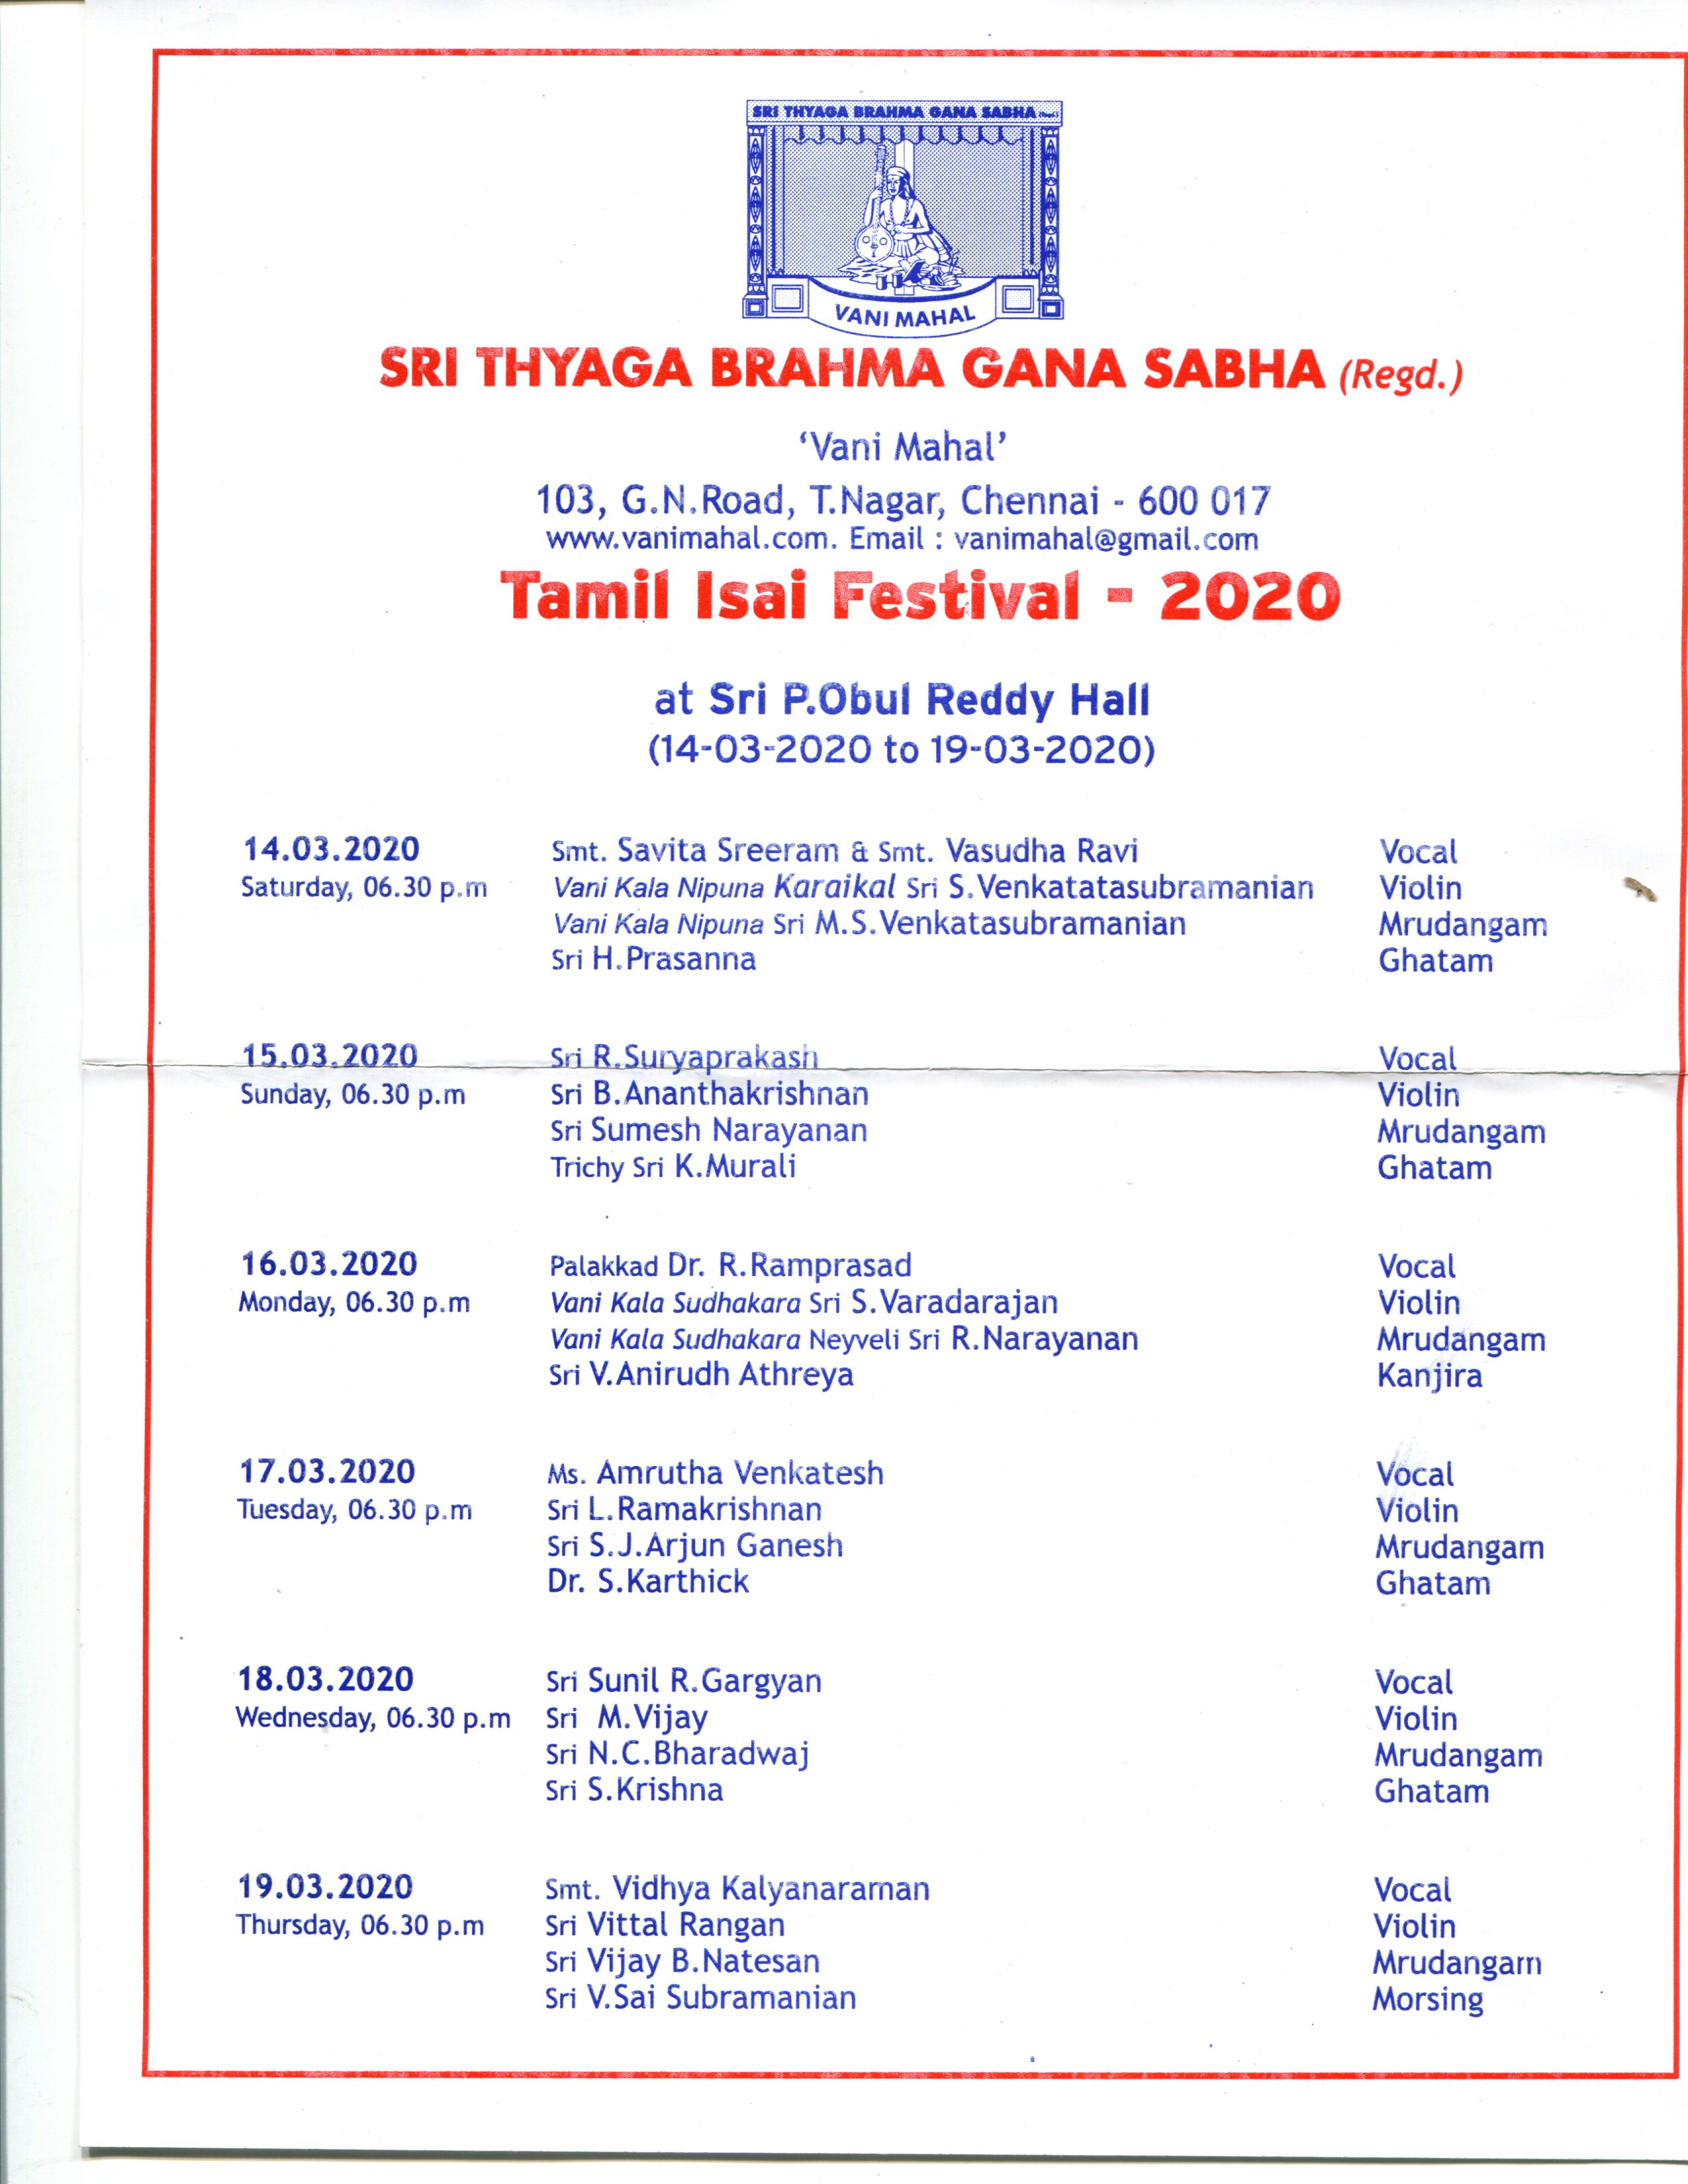 Tamil Isai Festival 2020